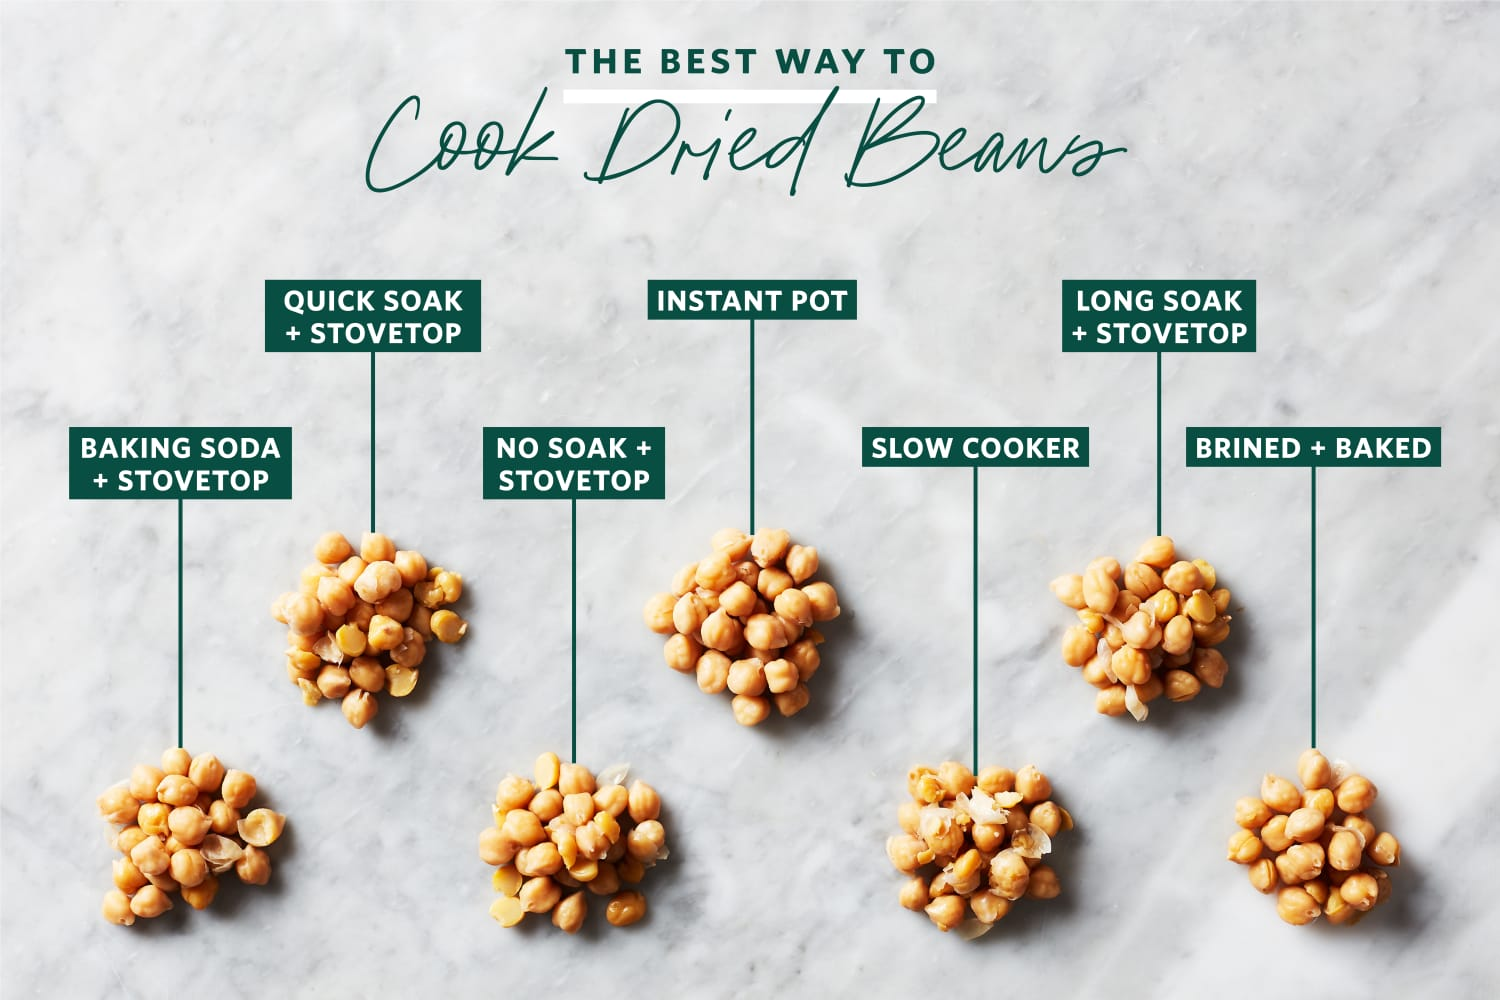 We Tried 7 Methods for Cooking Dried Beans and the Winner Blinded Us with Science